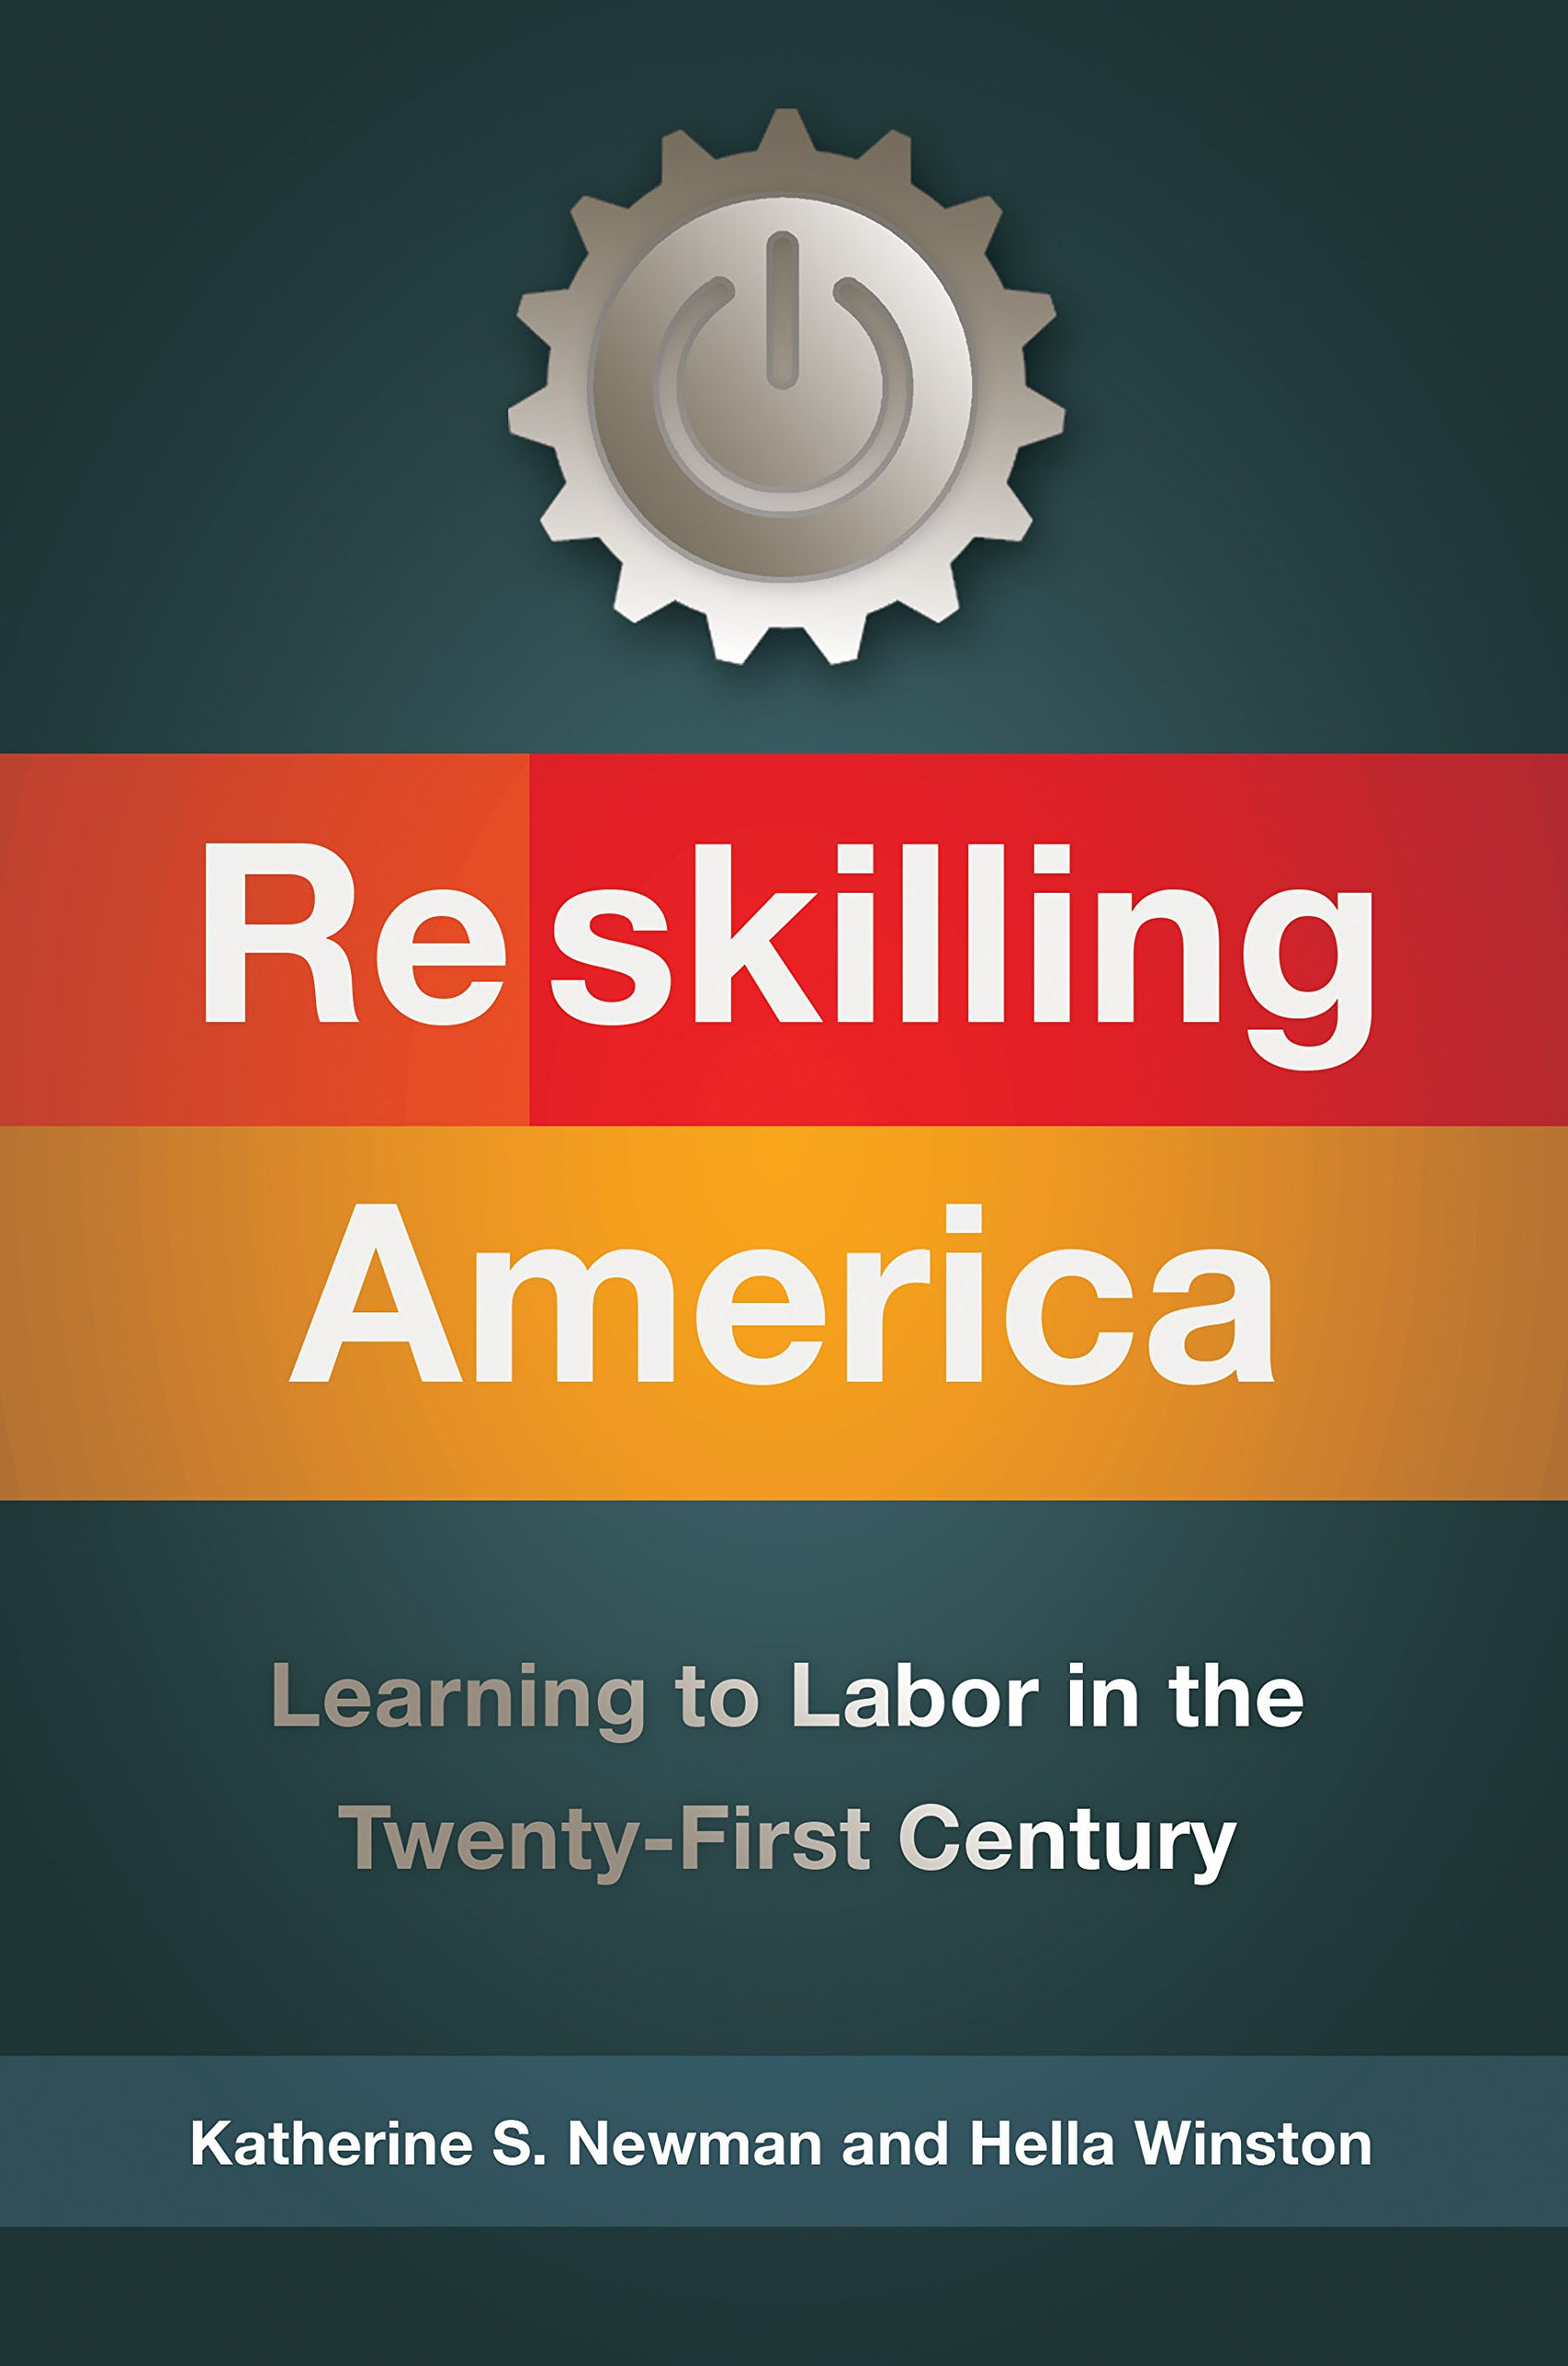 reskilling america learning to labor in the twenty-first century by katherine s. newman and hella winston book cover